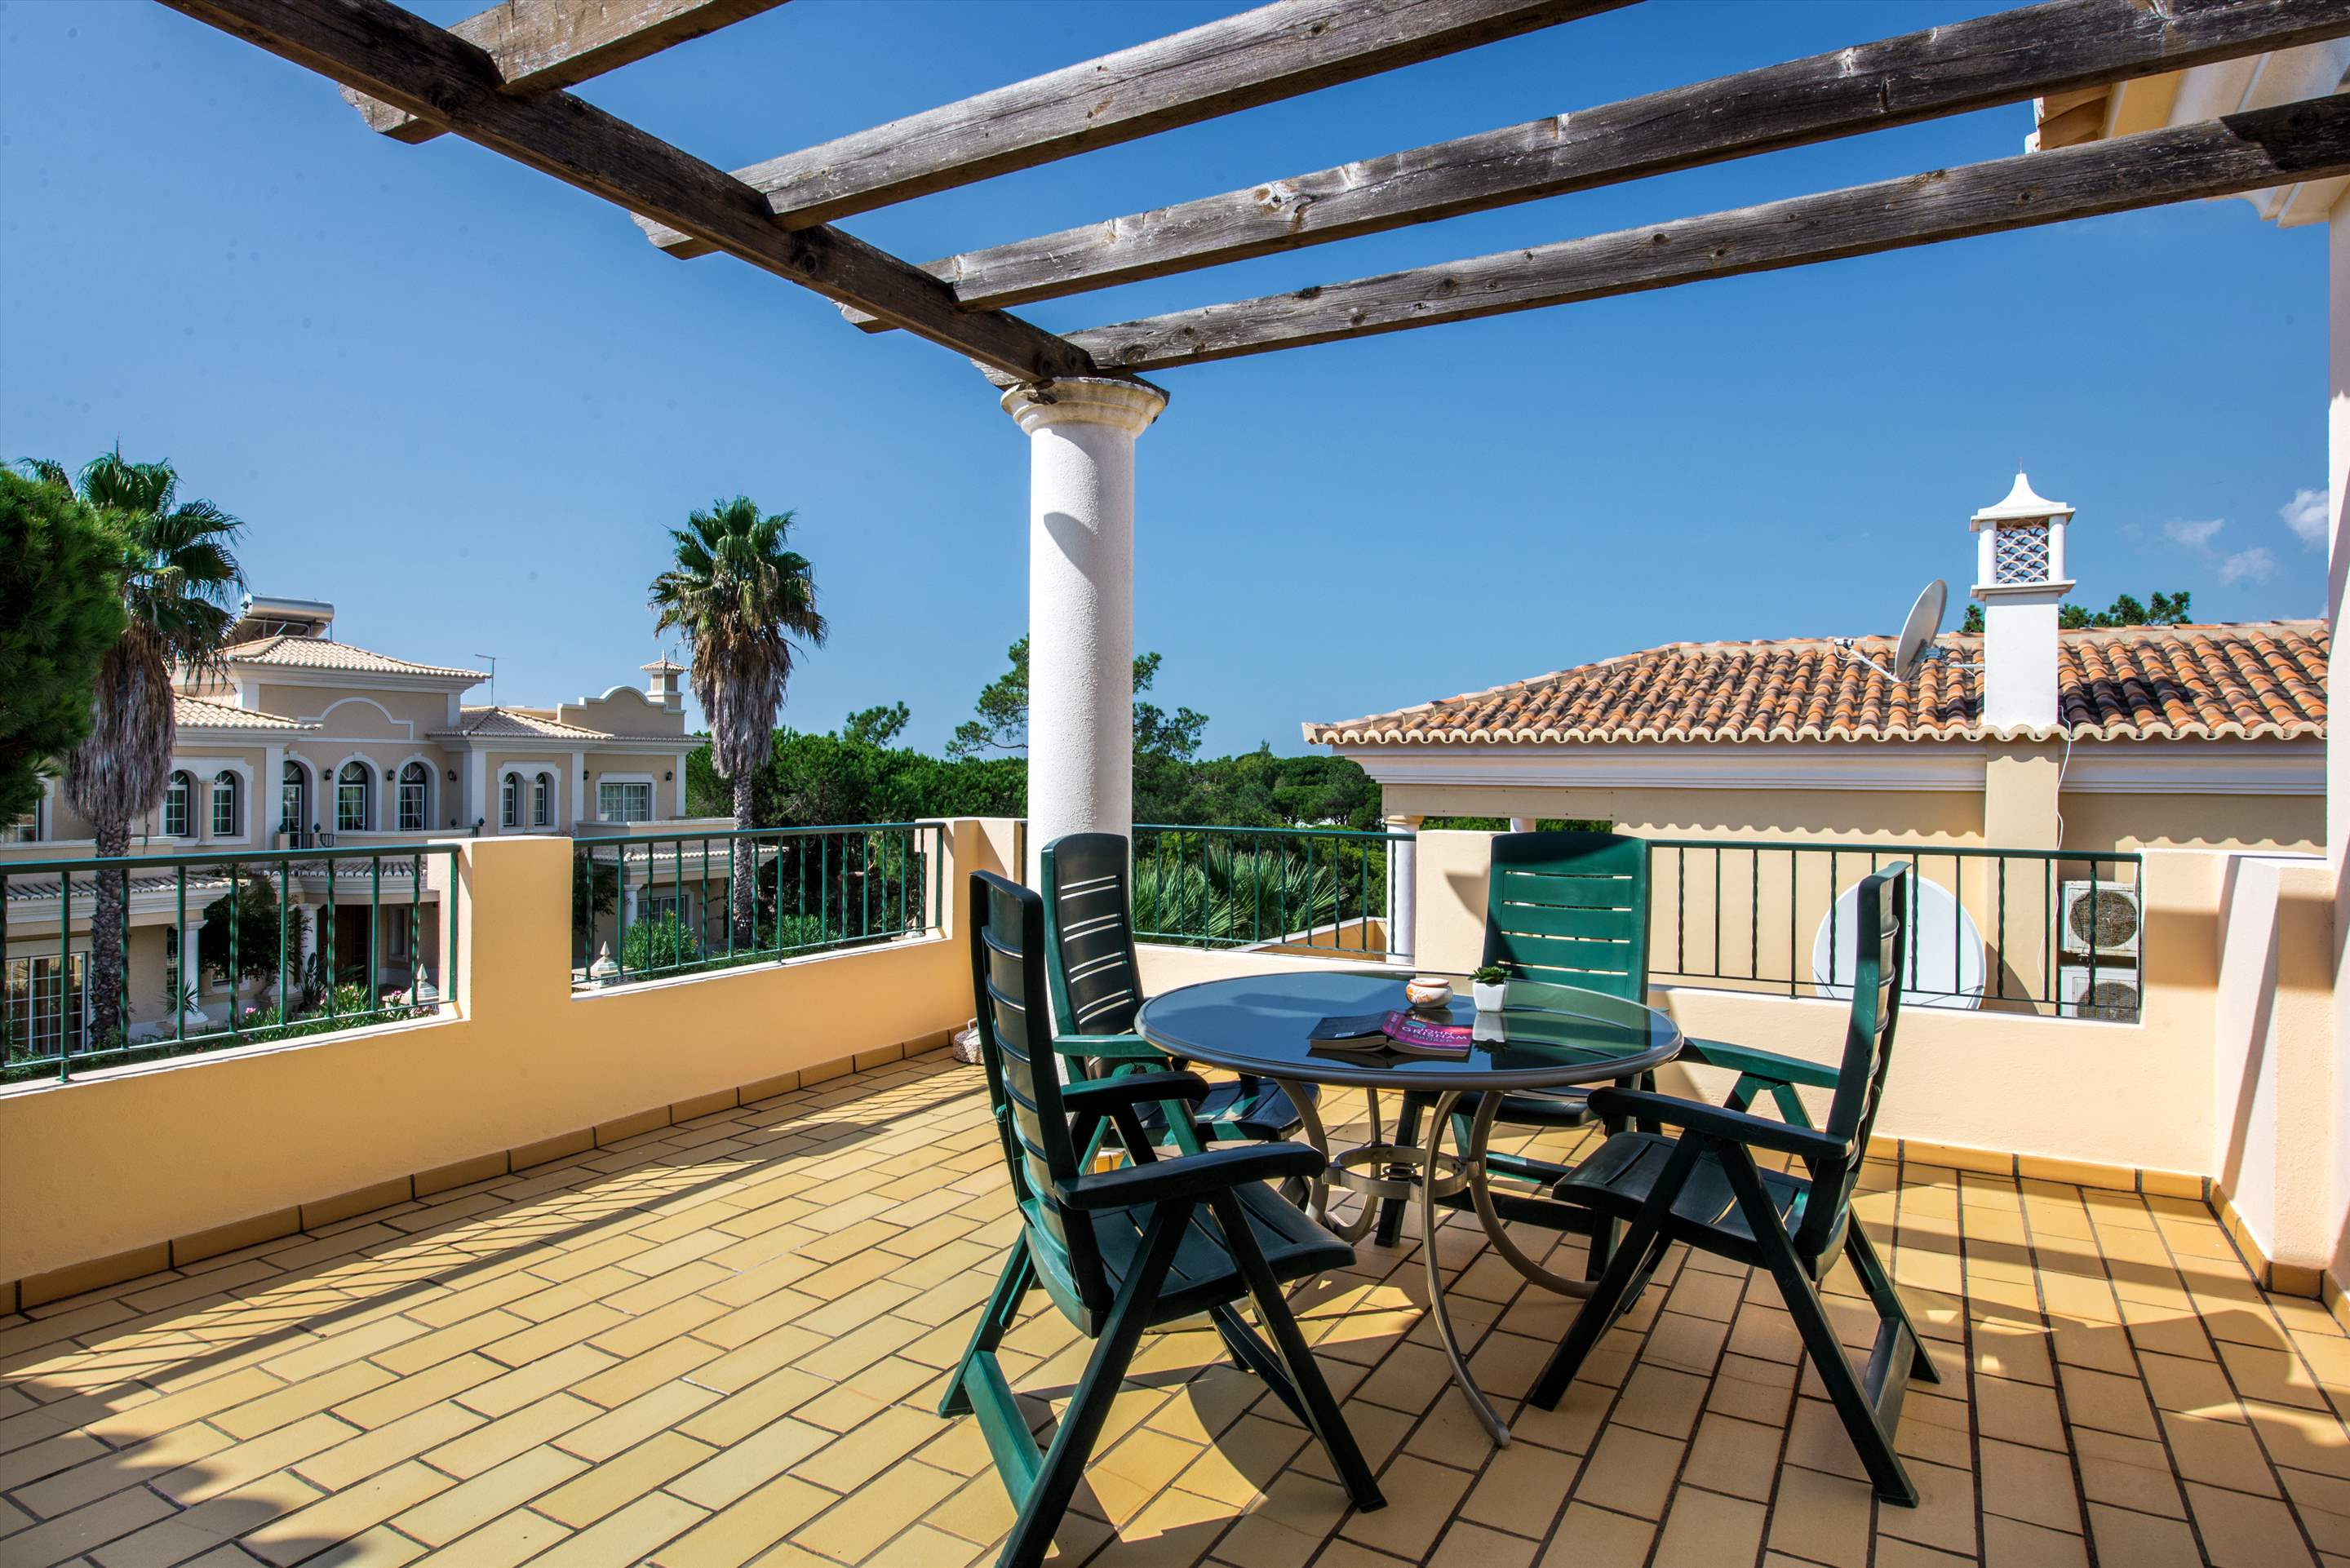 Casa da Encosta, 4 bedroom villa in Vale do Lobo, Algarve Photo #12